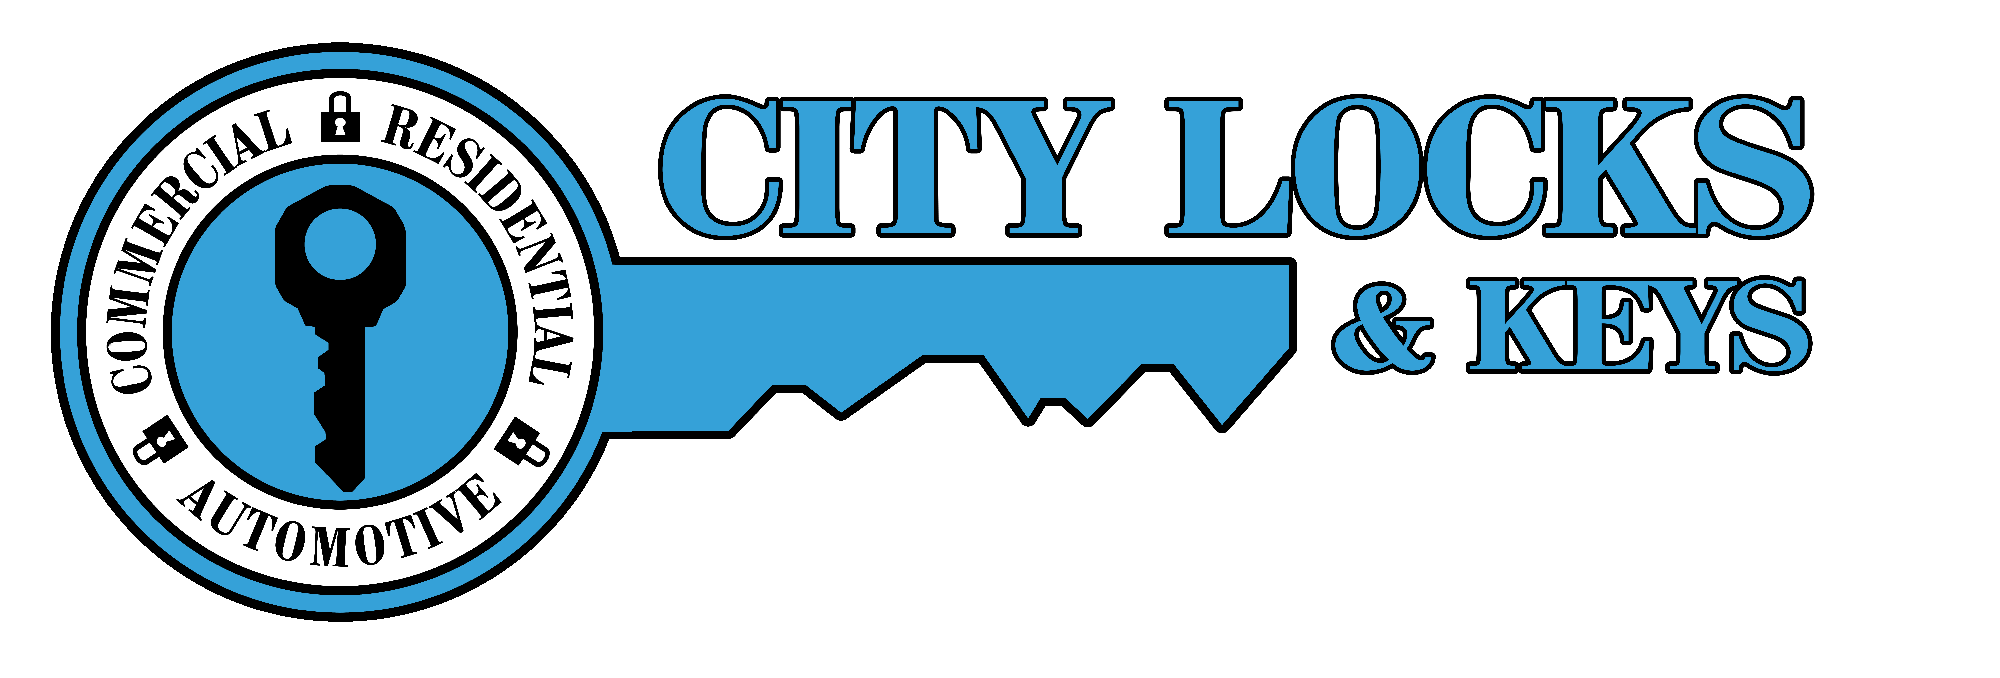 Logo City Locks & Keys